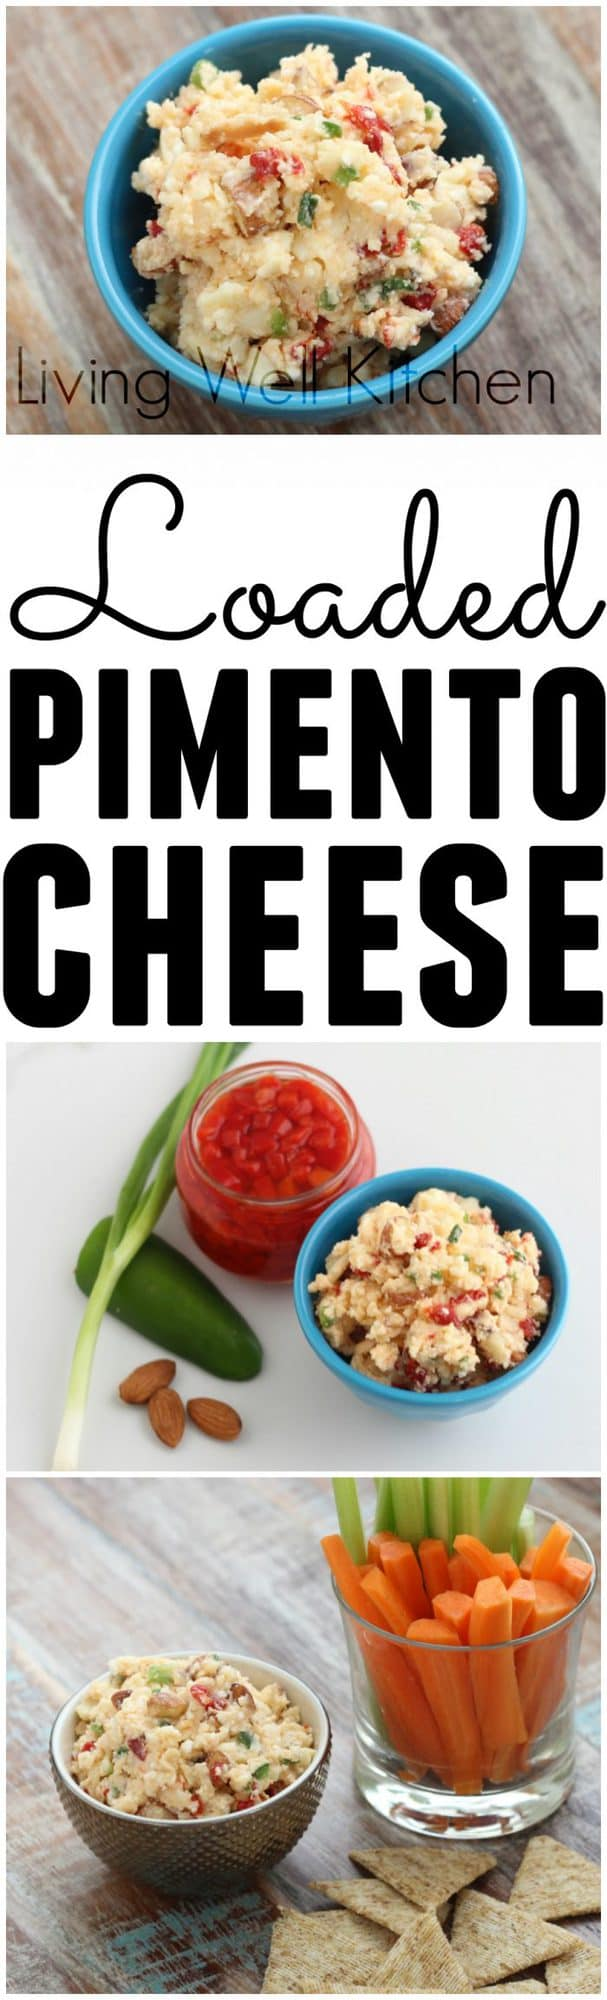 AD: Loaded Pimento Cheese from @memeinge is a loaded cheese spread perfect for snacking any time of the day made with Real California Milk cheese and packed with almonds, jalapeños, garlic, and green onions.